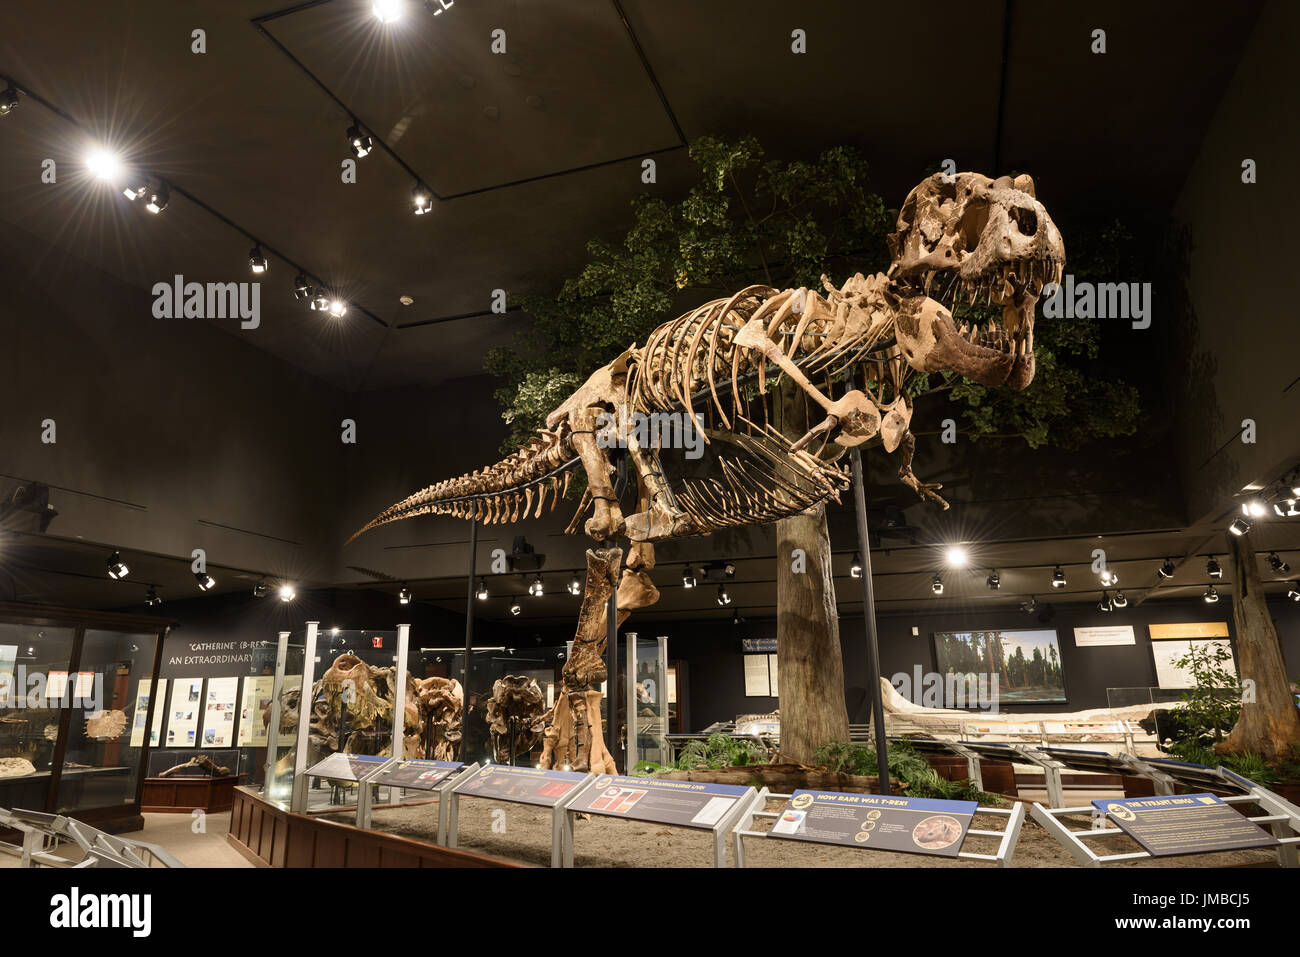 EDITORIAL, 12 July 2017, Bozeman Montana, Museum of the Rockies, Tyrannosaurus Rex Fossil Exhibit - Stock Image